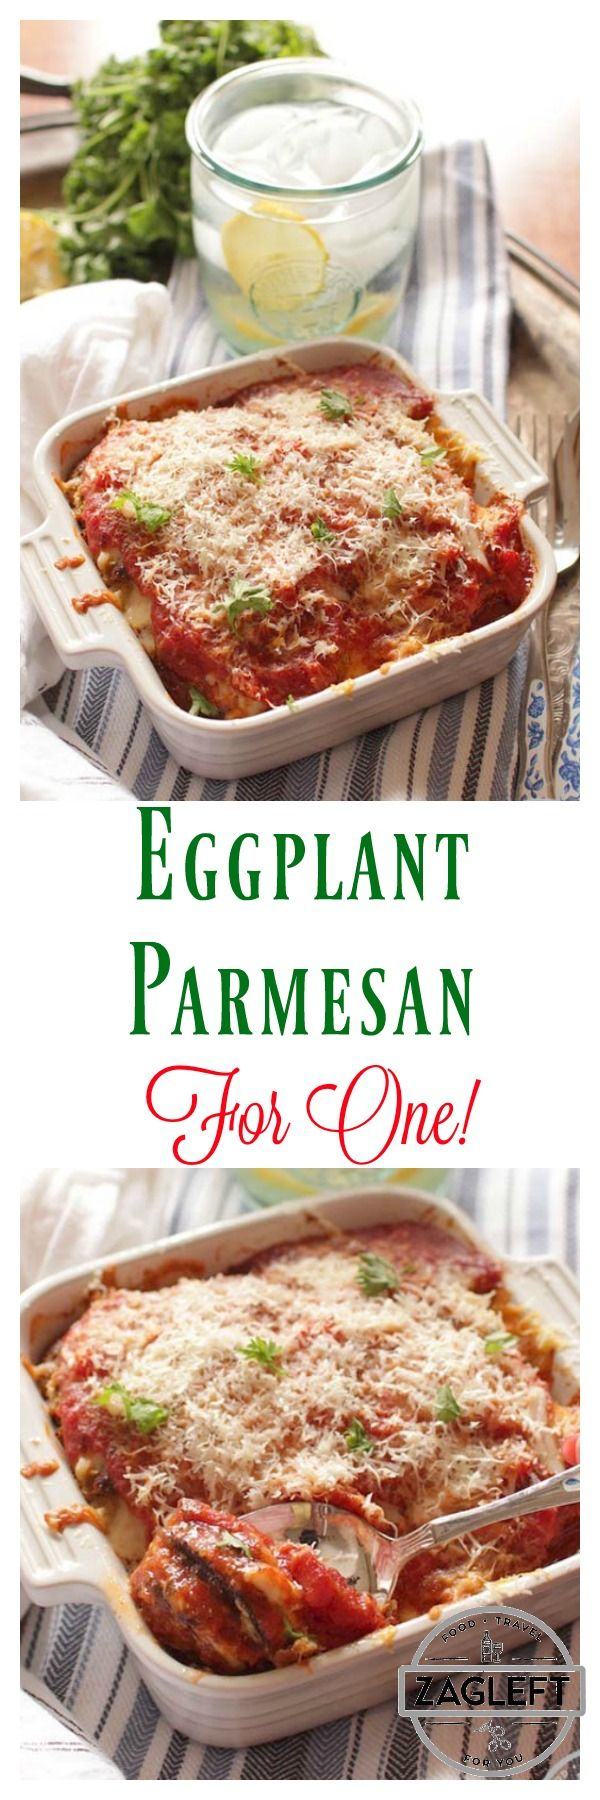 Eggplant Parmesan For One, layers of lightly breaded eggplant slices, melted mozzarella cheese and tomato sauce. An easy recipe and a delicious meal for those cooking for one. | zagleft.com